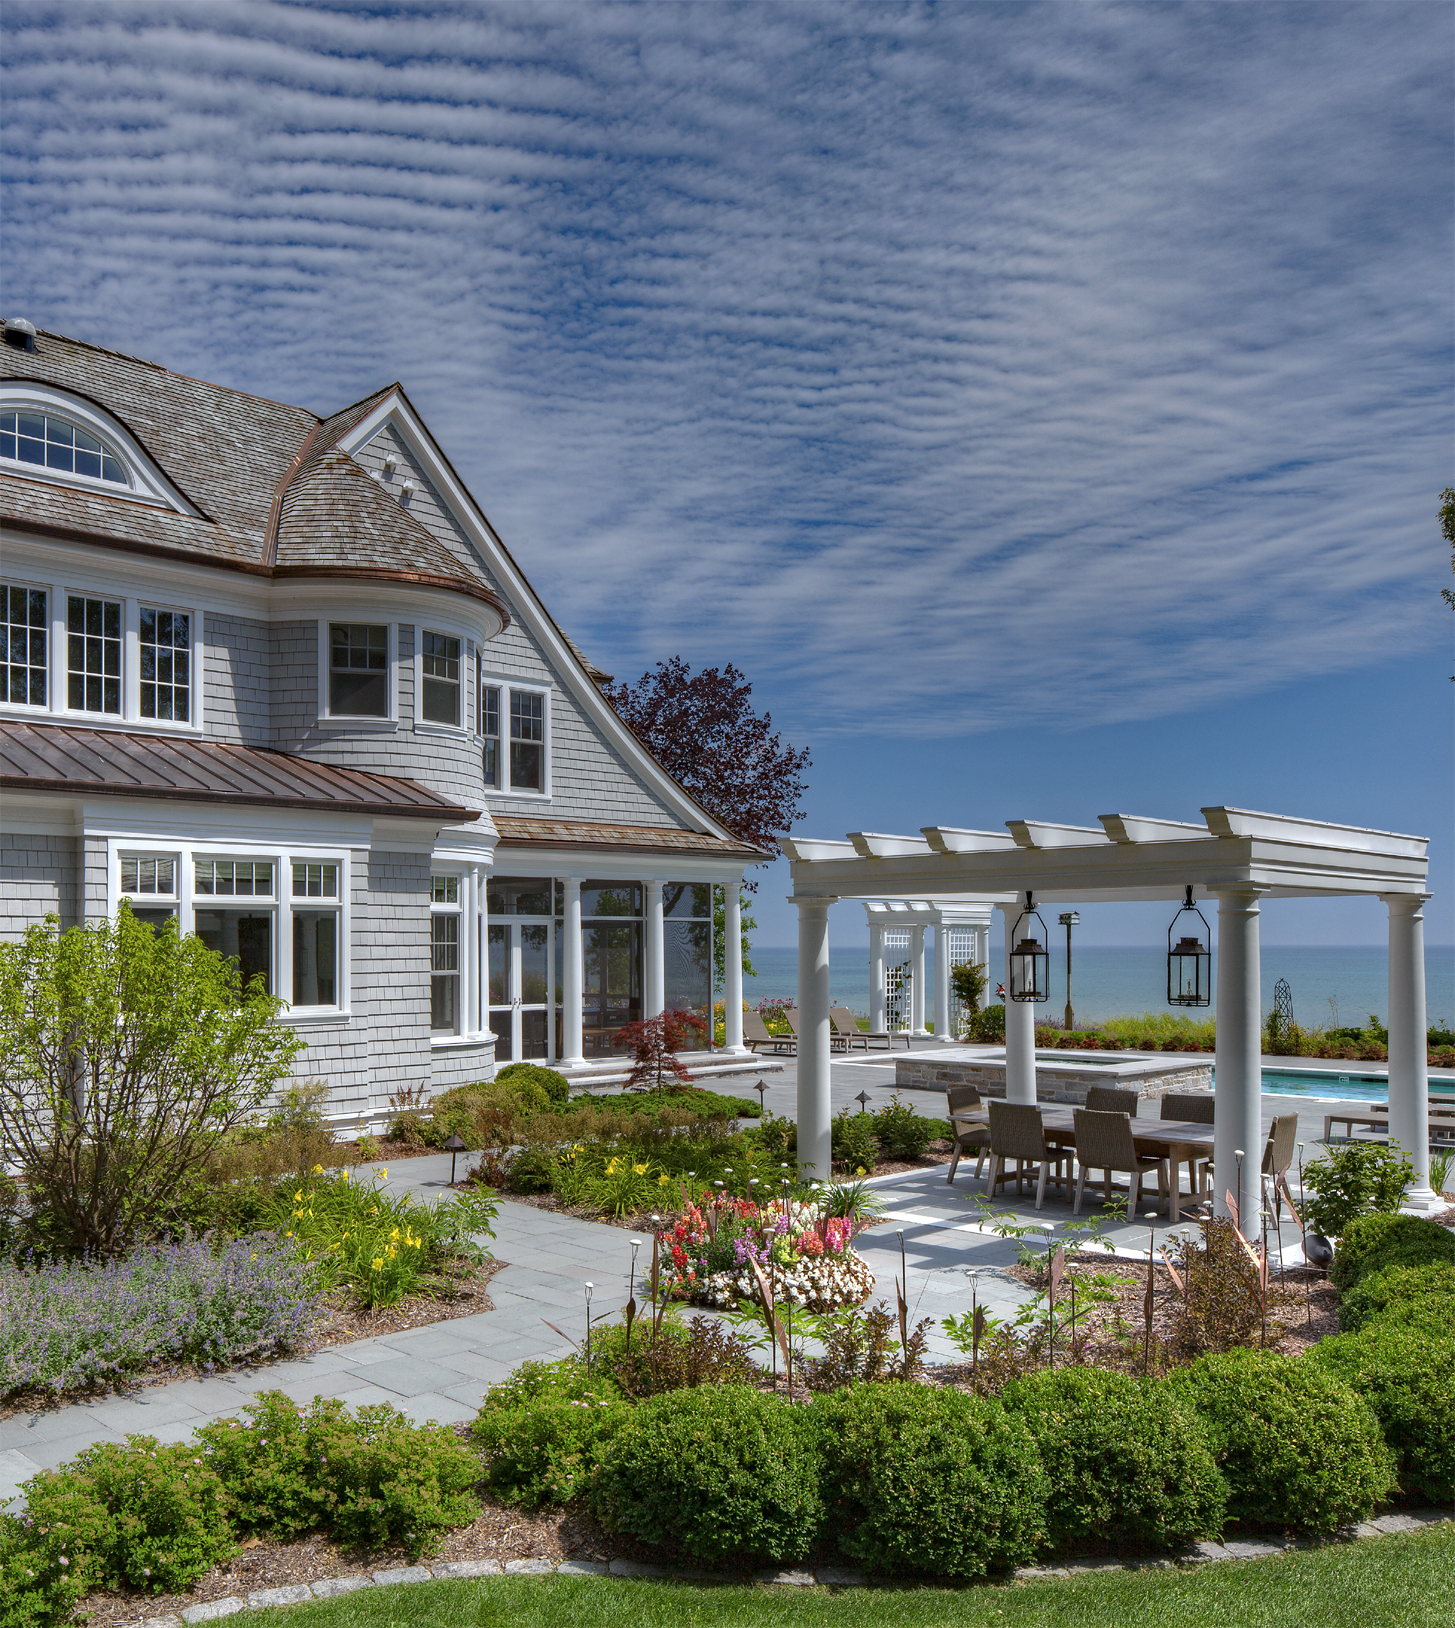 Beach House, Shingle Style, Exterior with Pool and Pergola by Deep River Partners, Ltd.